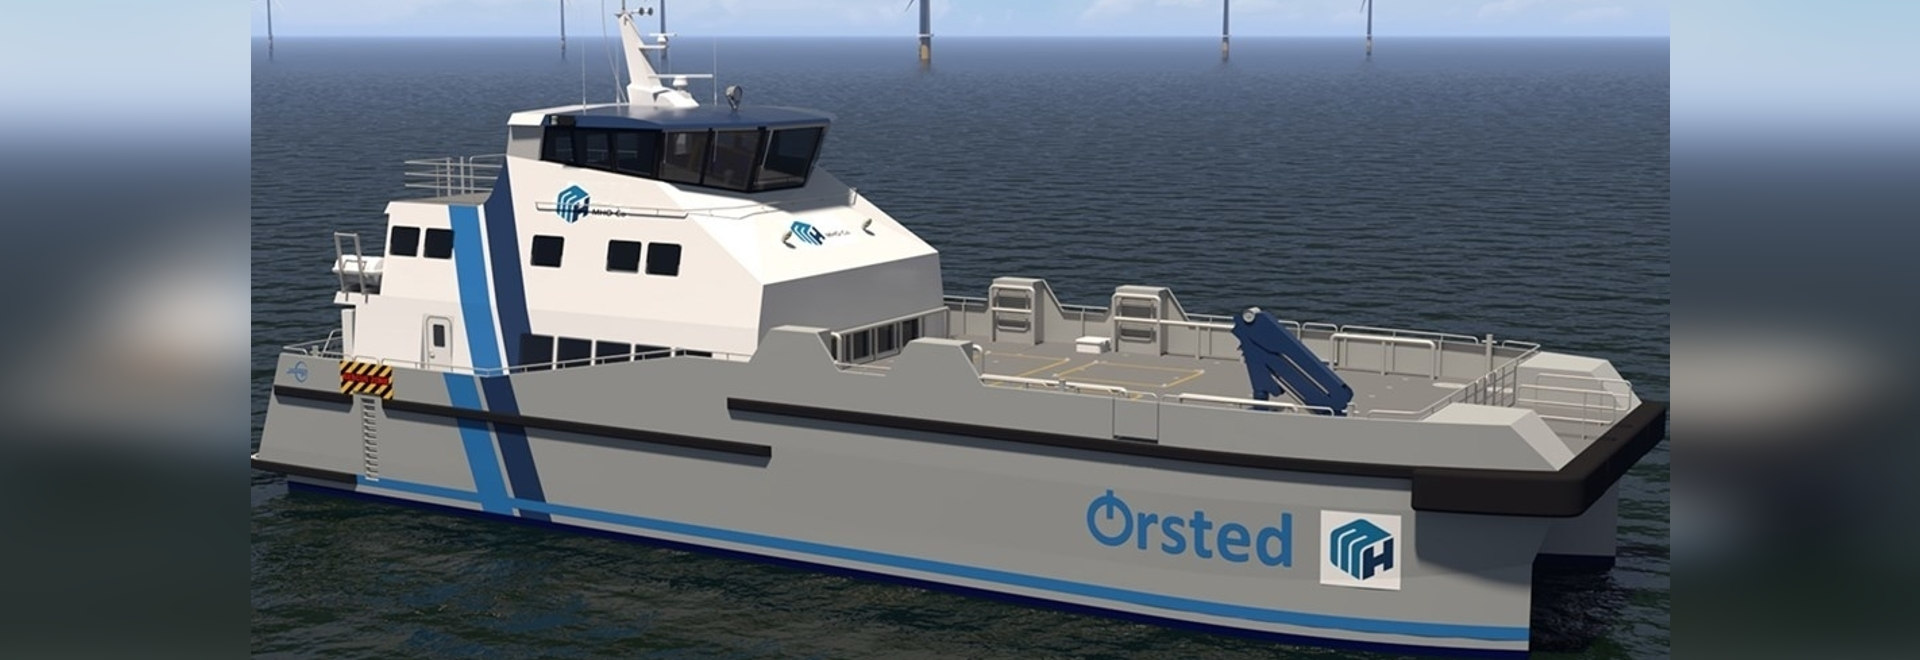 The 35-meter (112-foot) CTVs have been designed by MHO&Co in cooperation with Incat Crowther.